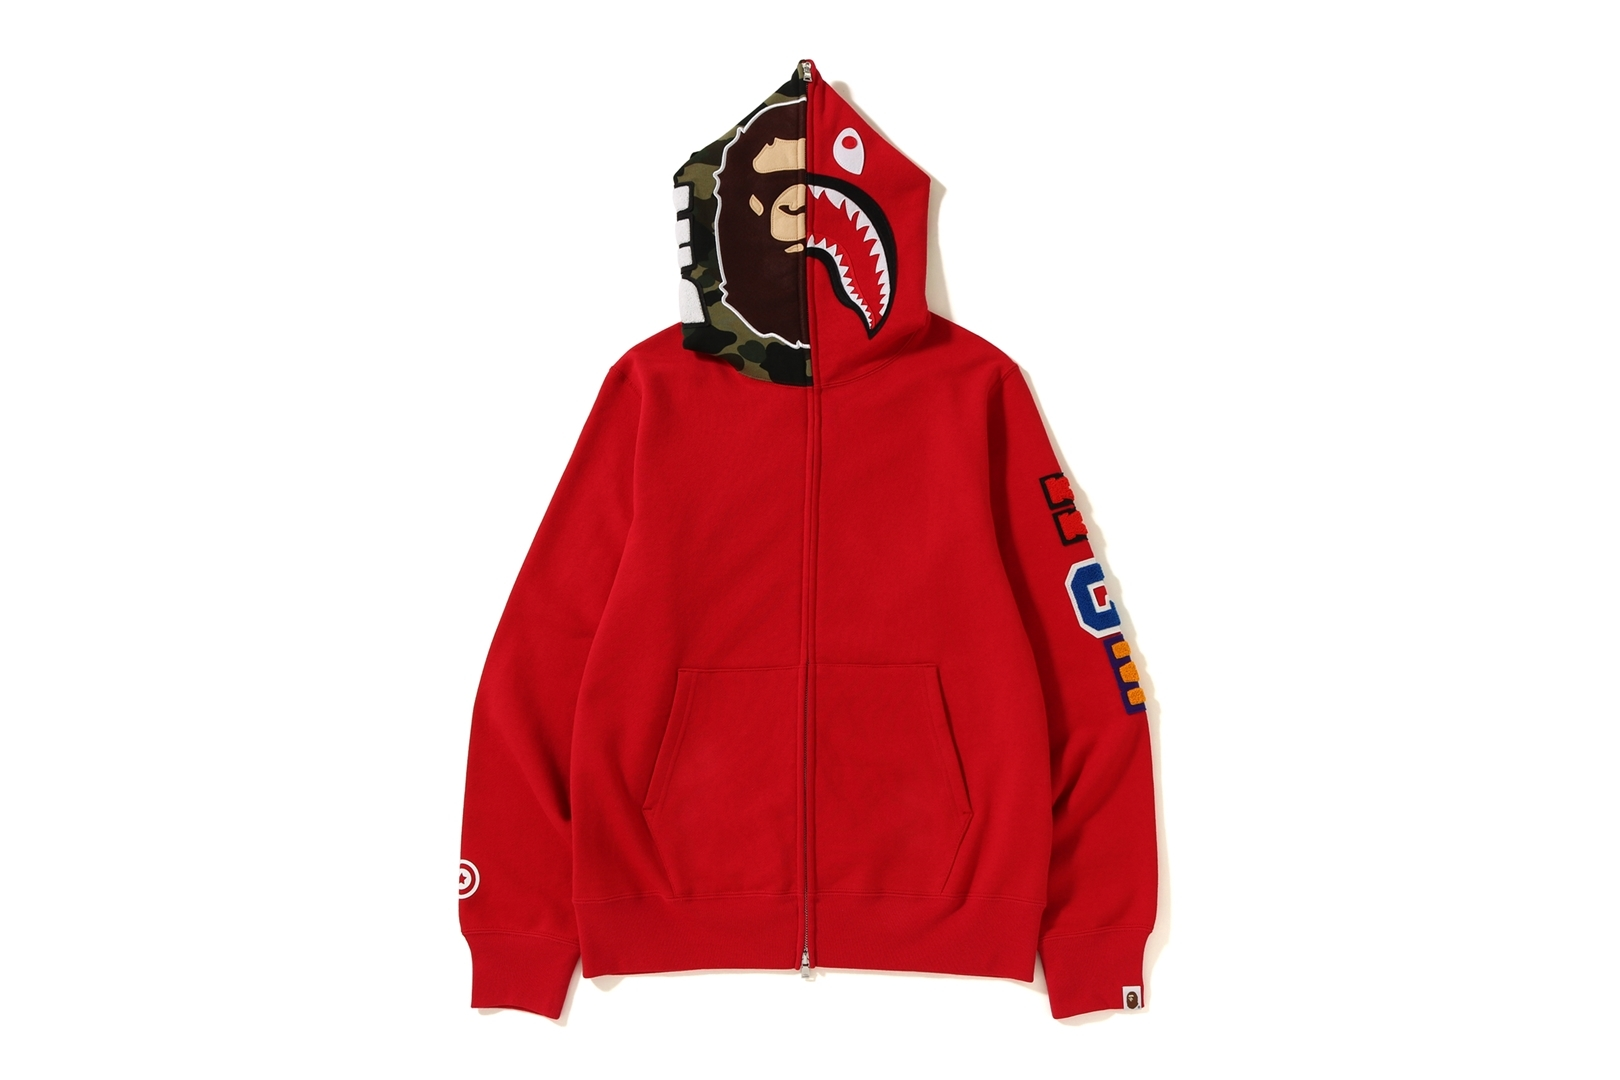 2ND APE SHARK FULL ZIP HOODIE_a0174495_17201640.jpg